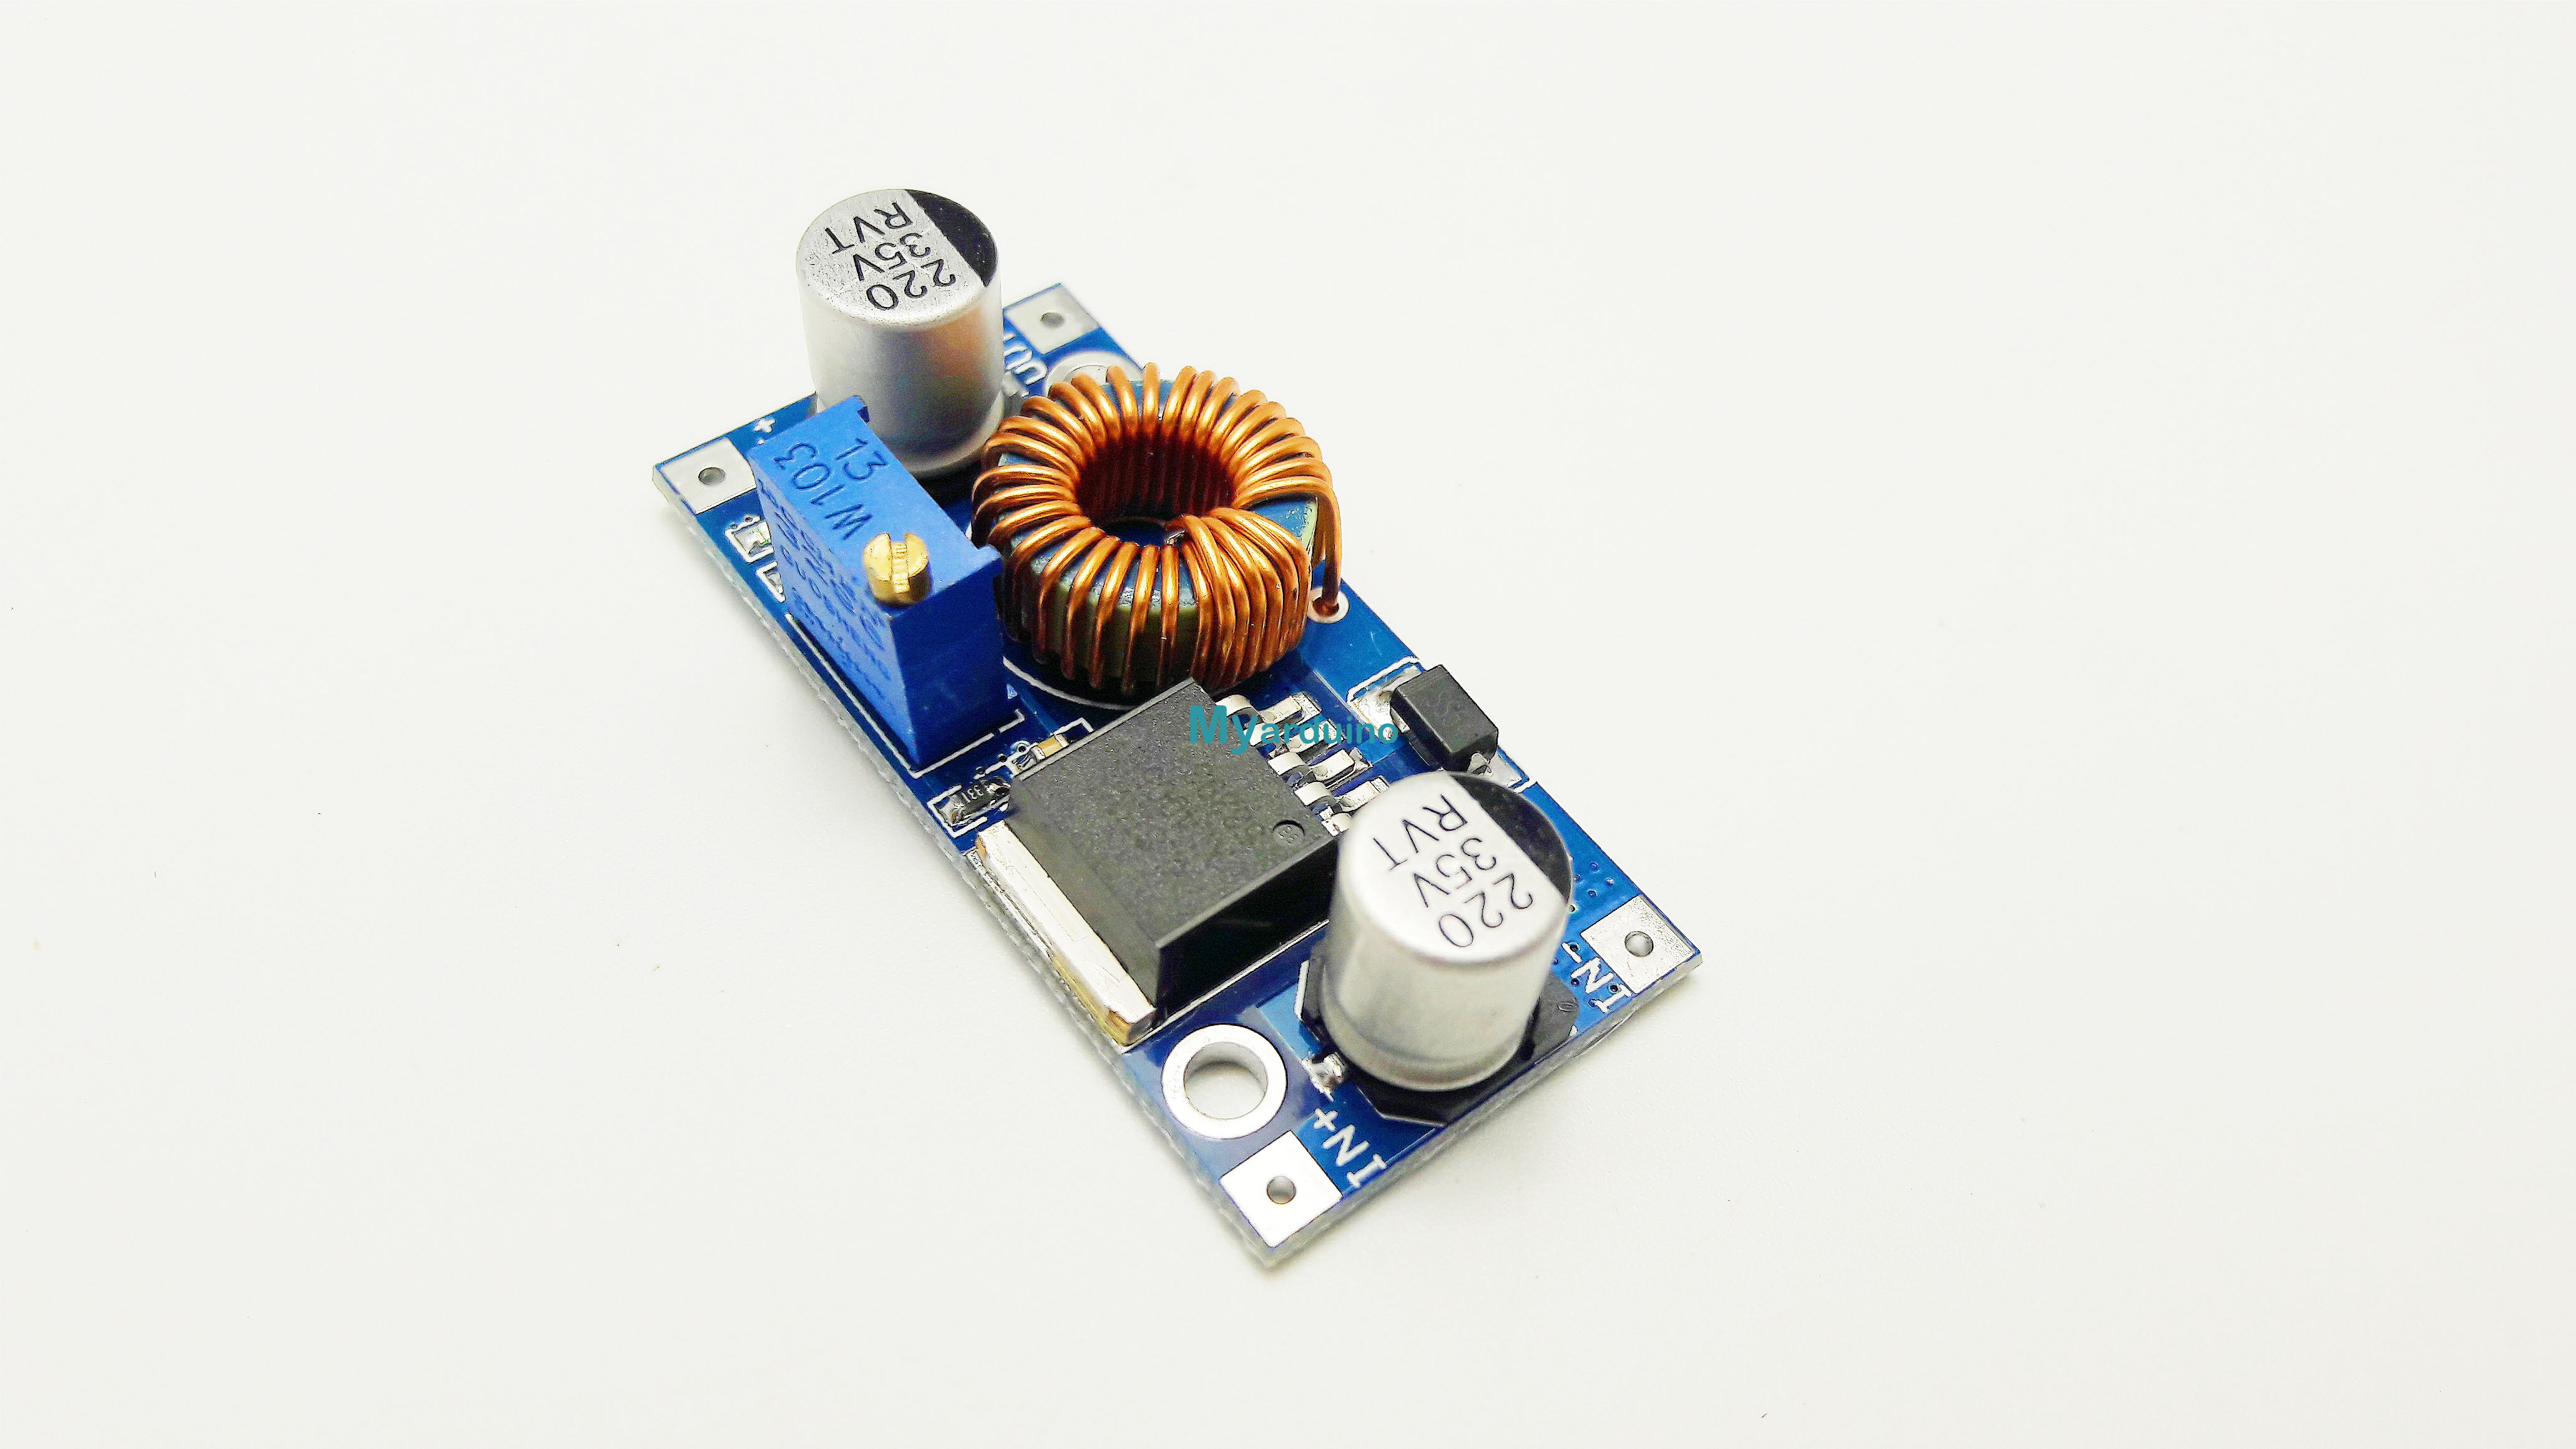 XL4005 5A DC-DC DC adjustable step down module